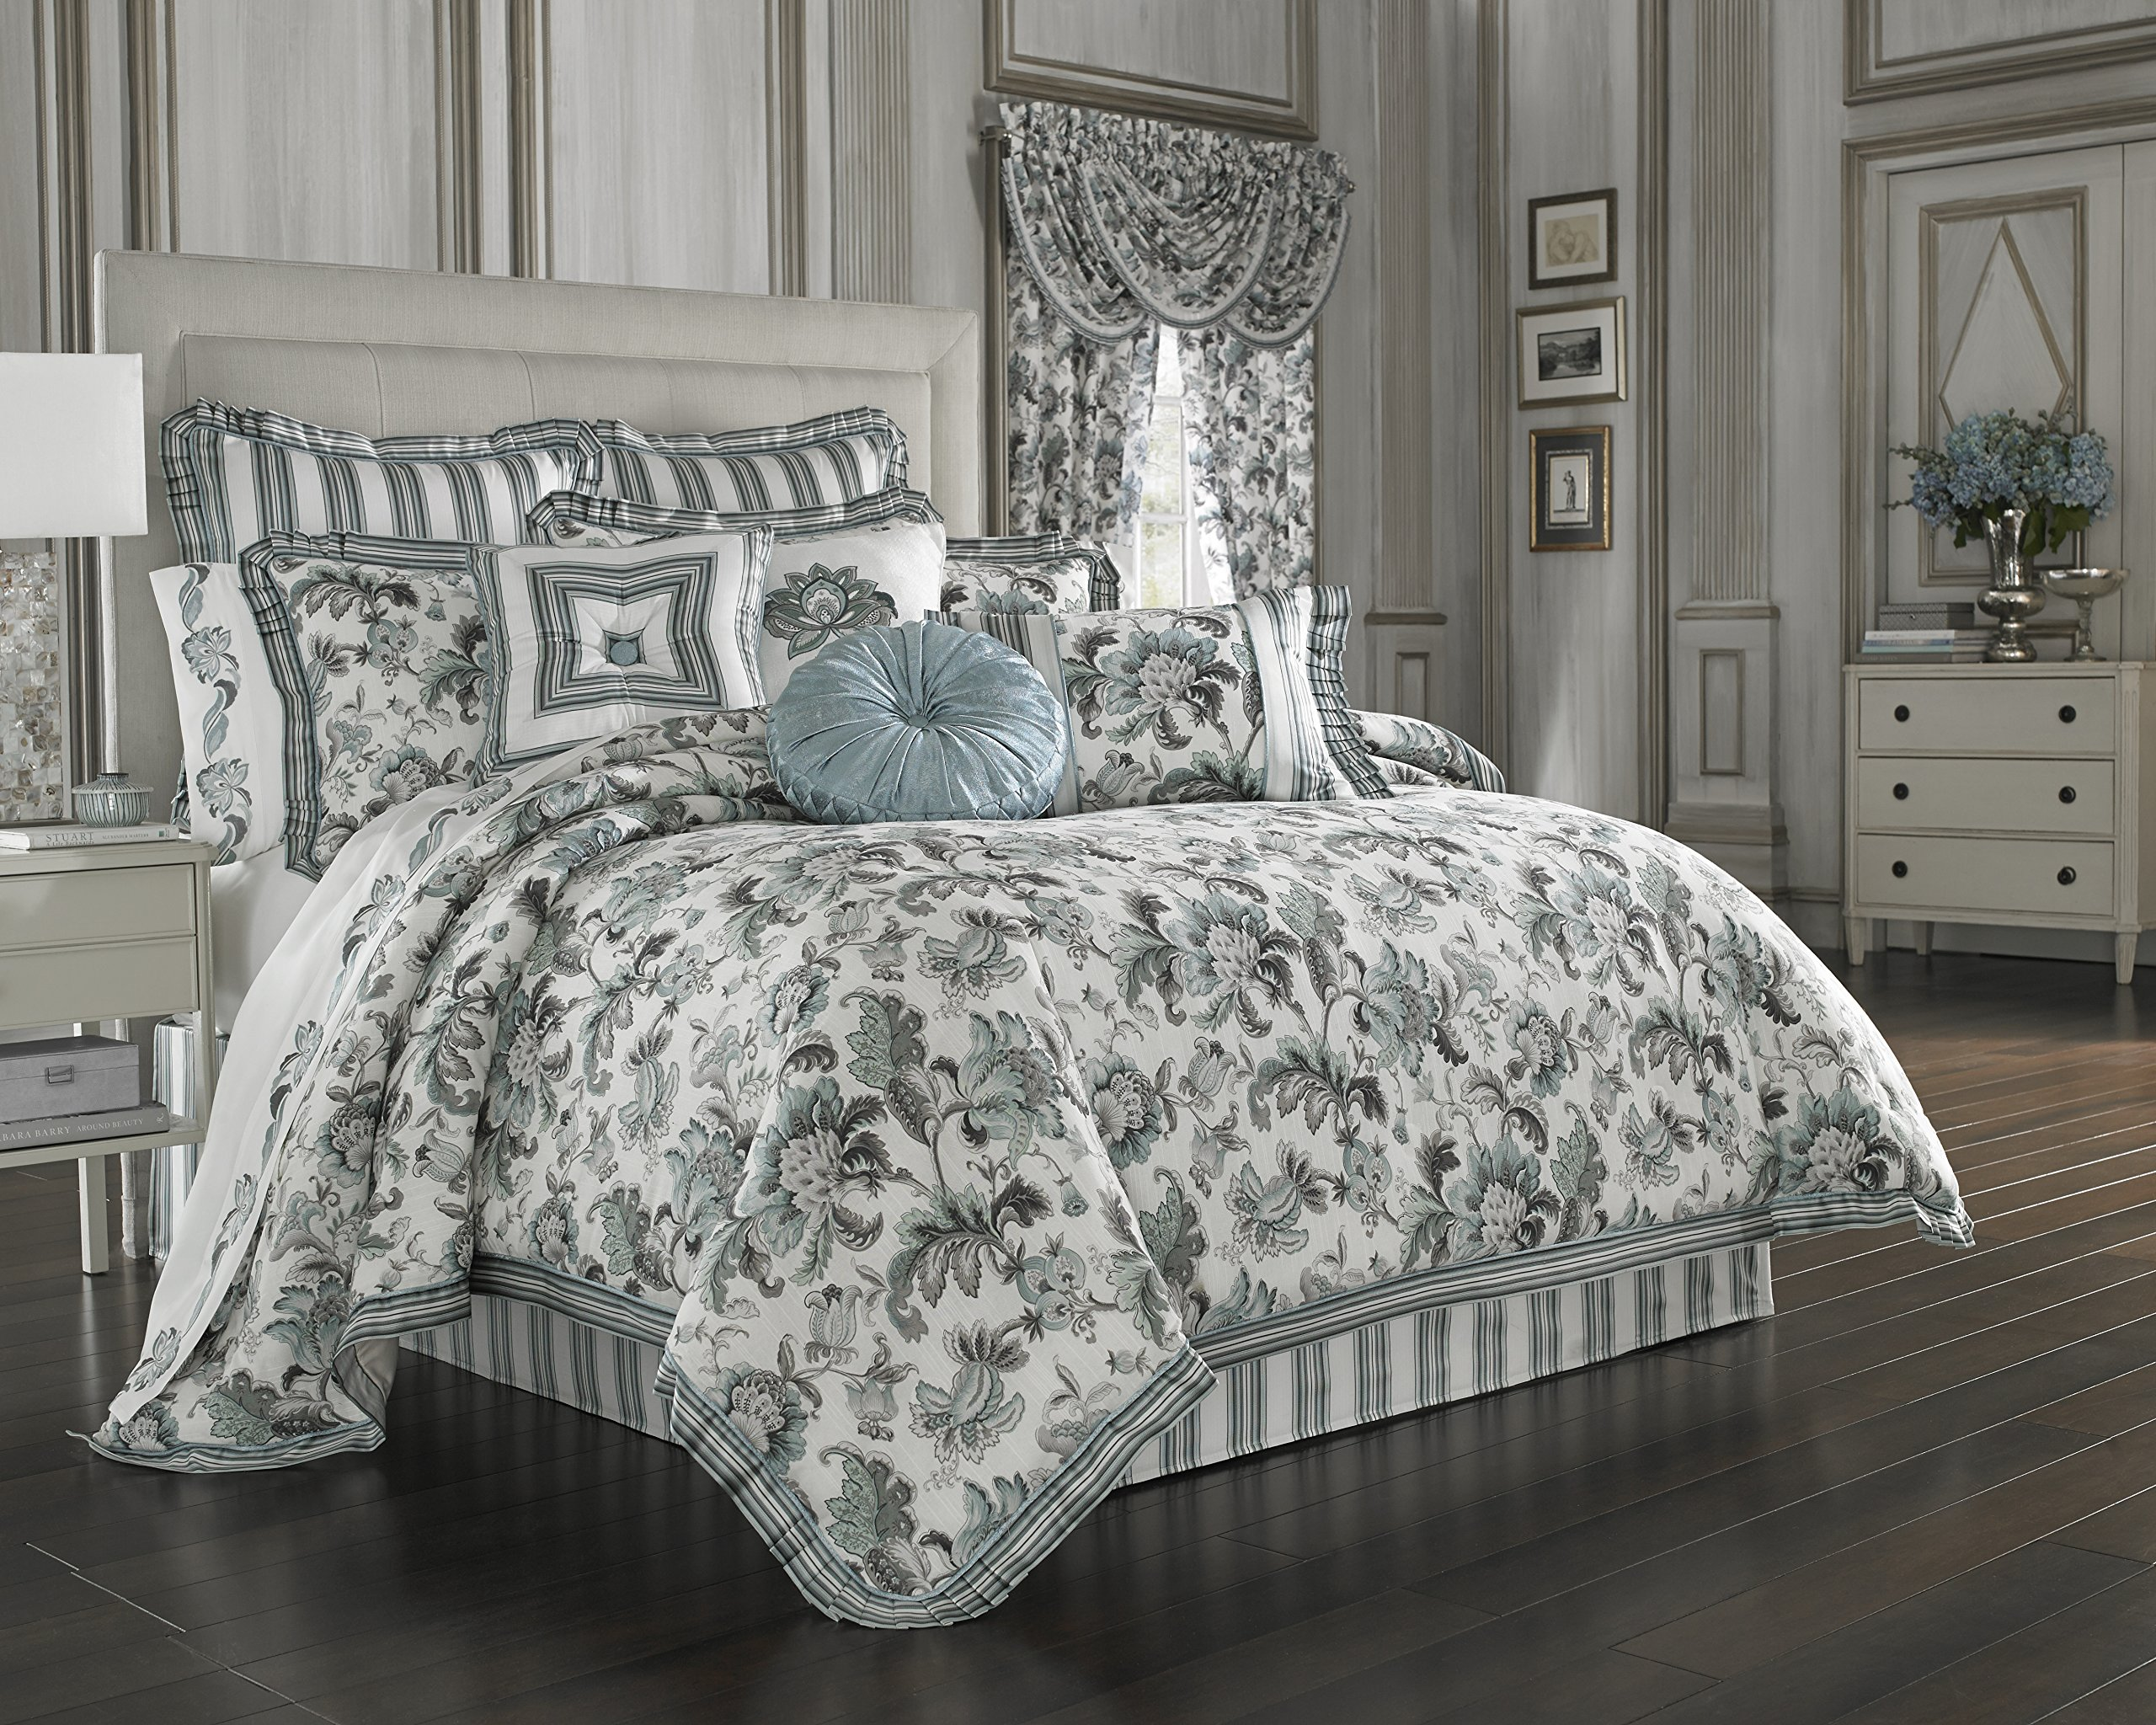 J. Queen New York ''Atrium'' Comforter Set in Spa, King